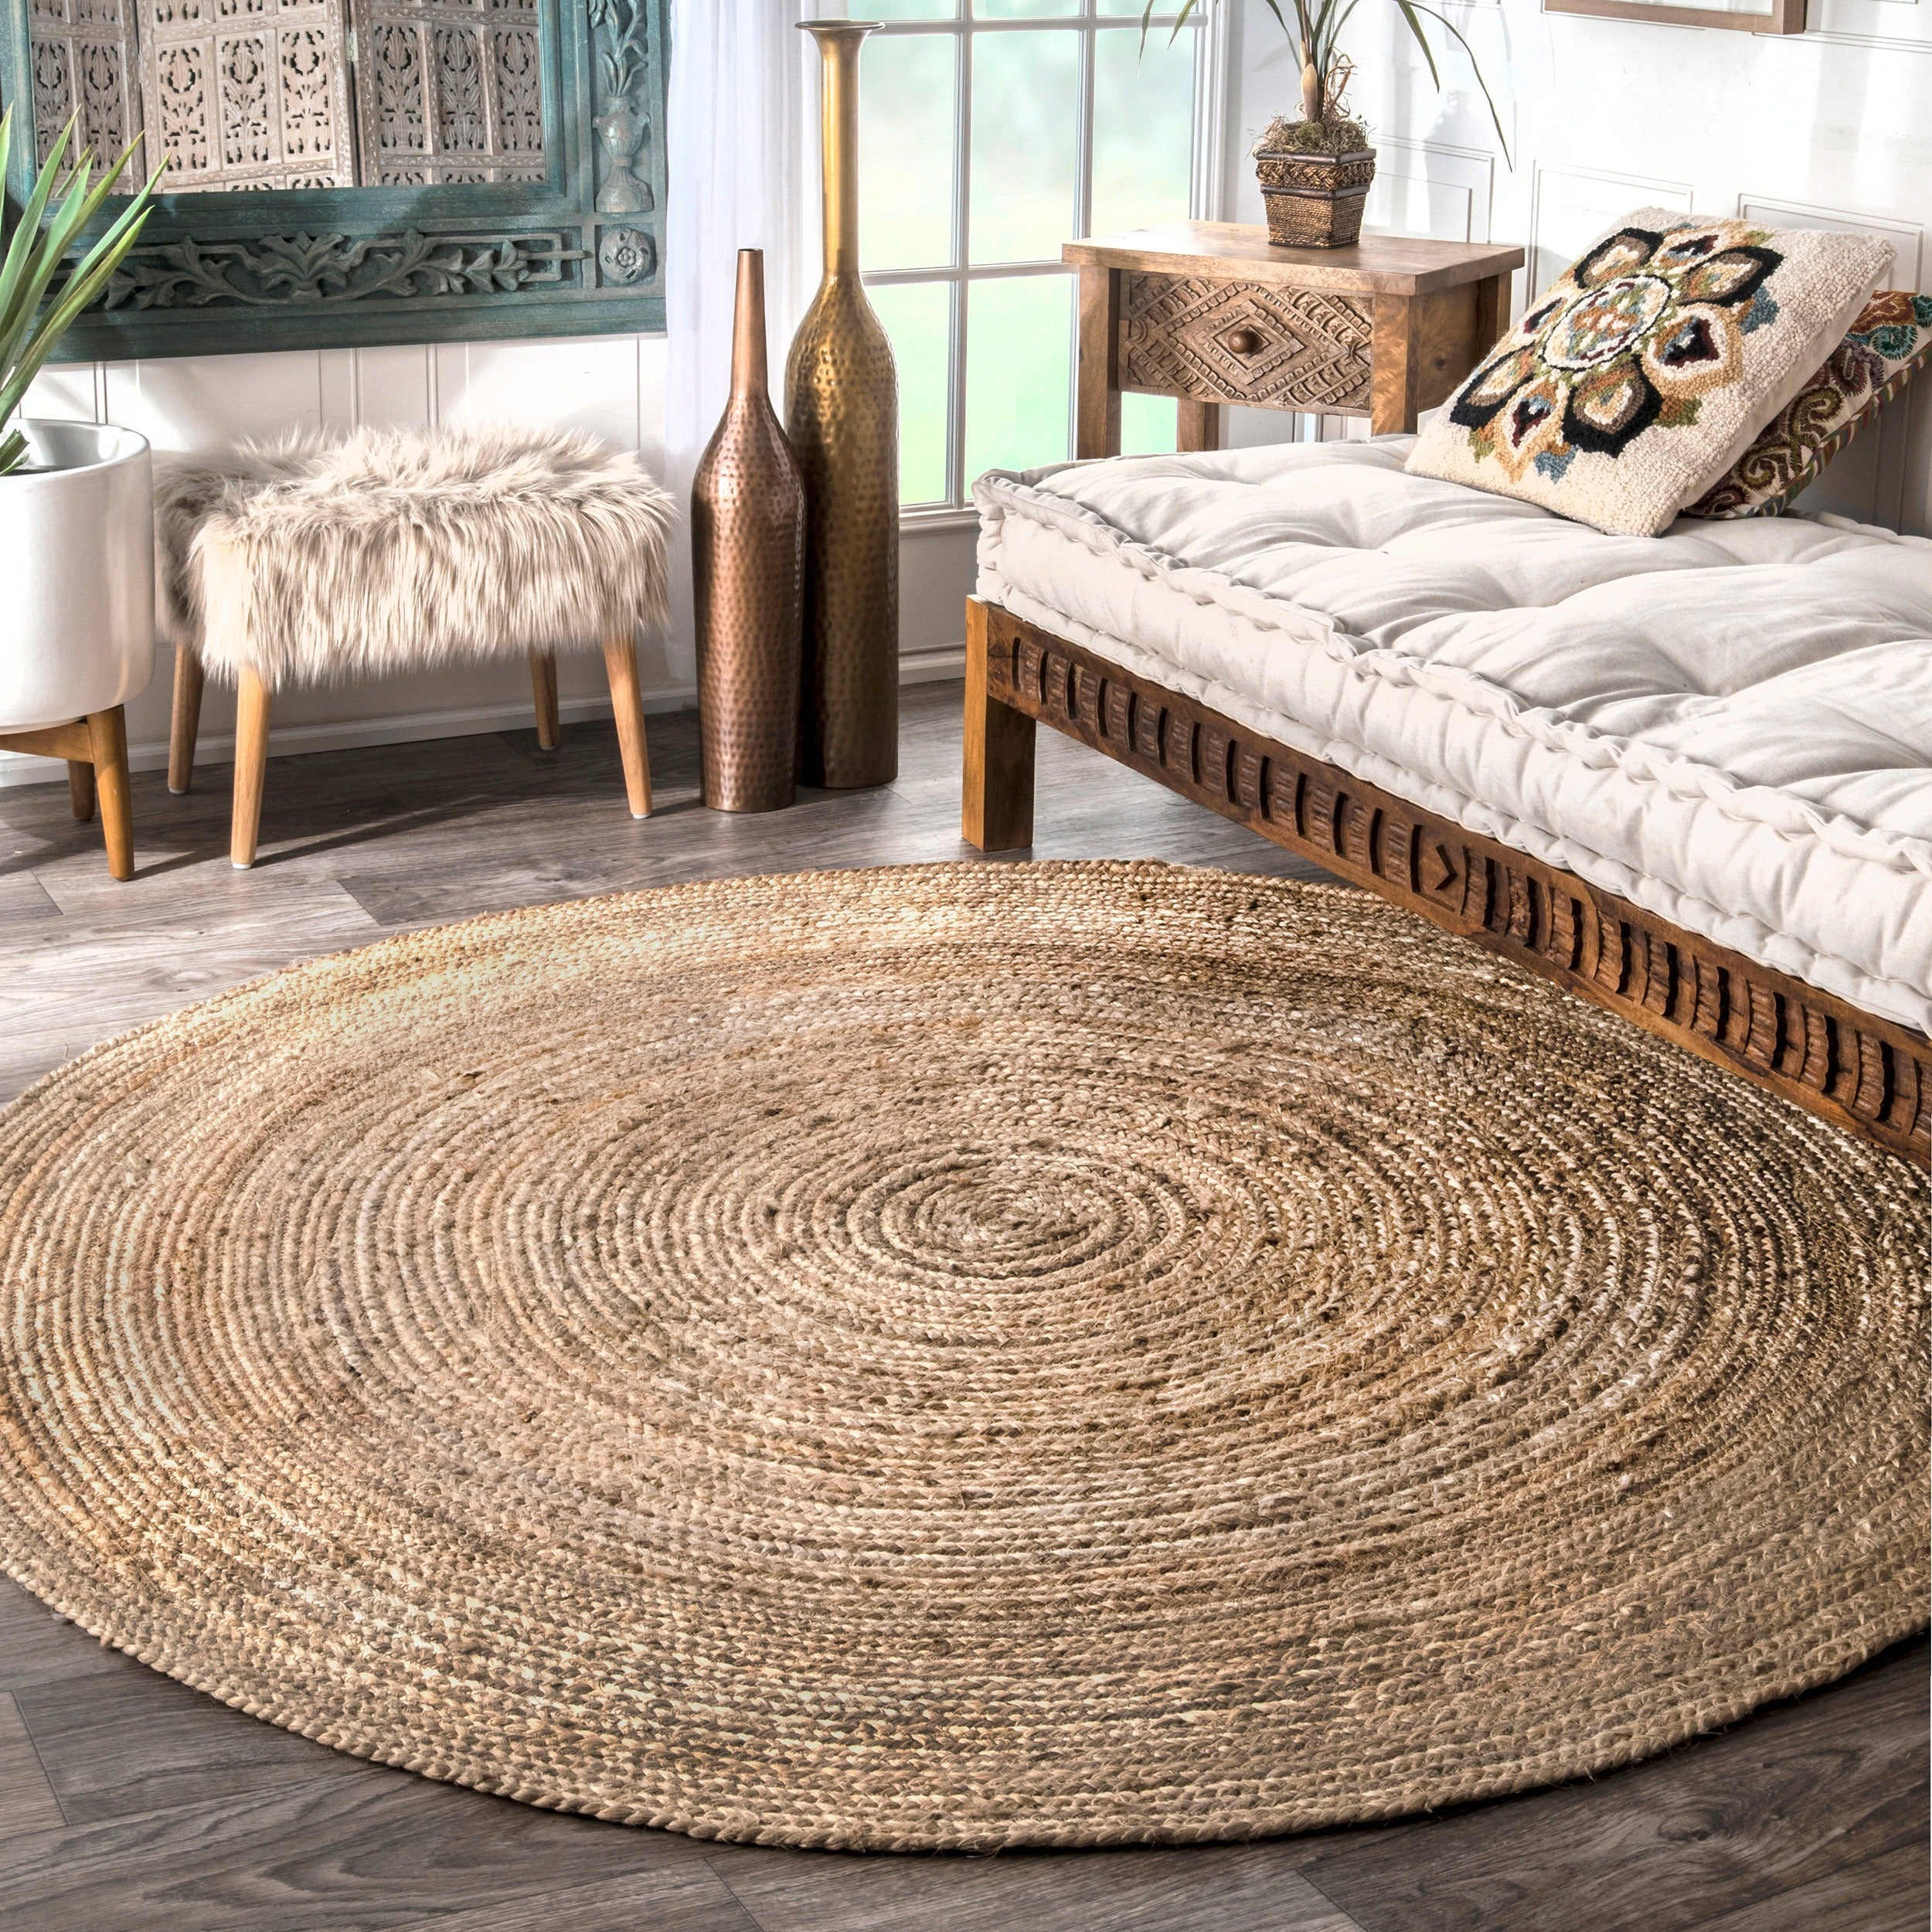 floors ft round modern flooring awesome for area interior rugs decor idea rug lowes oriental